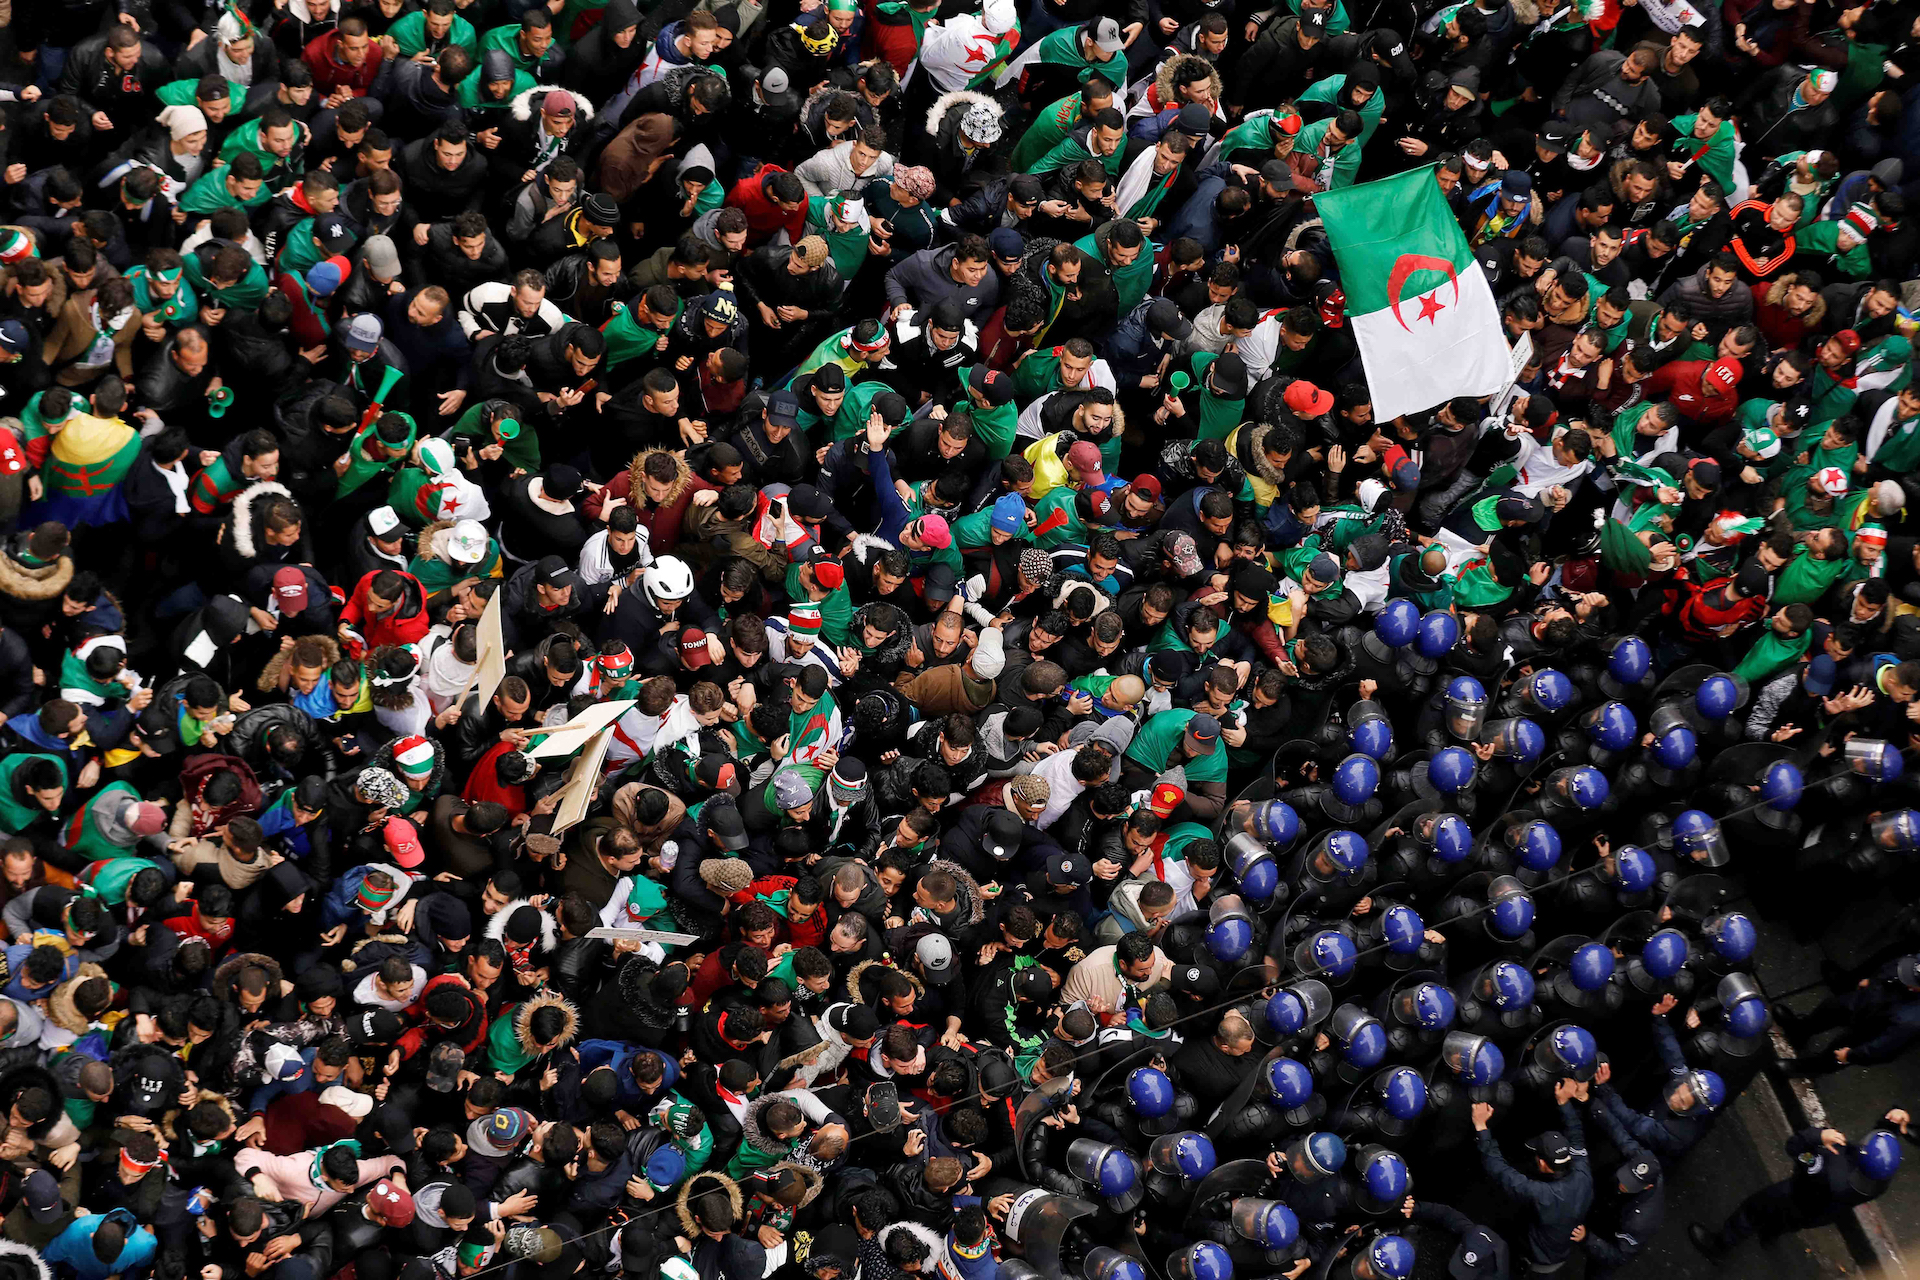 ALGERIA-PROTESTS/